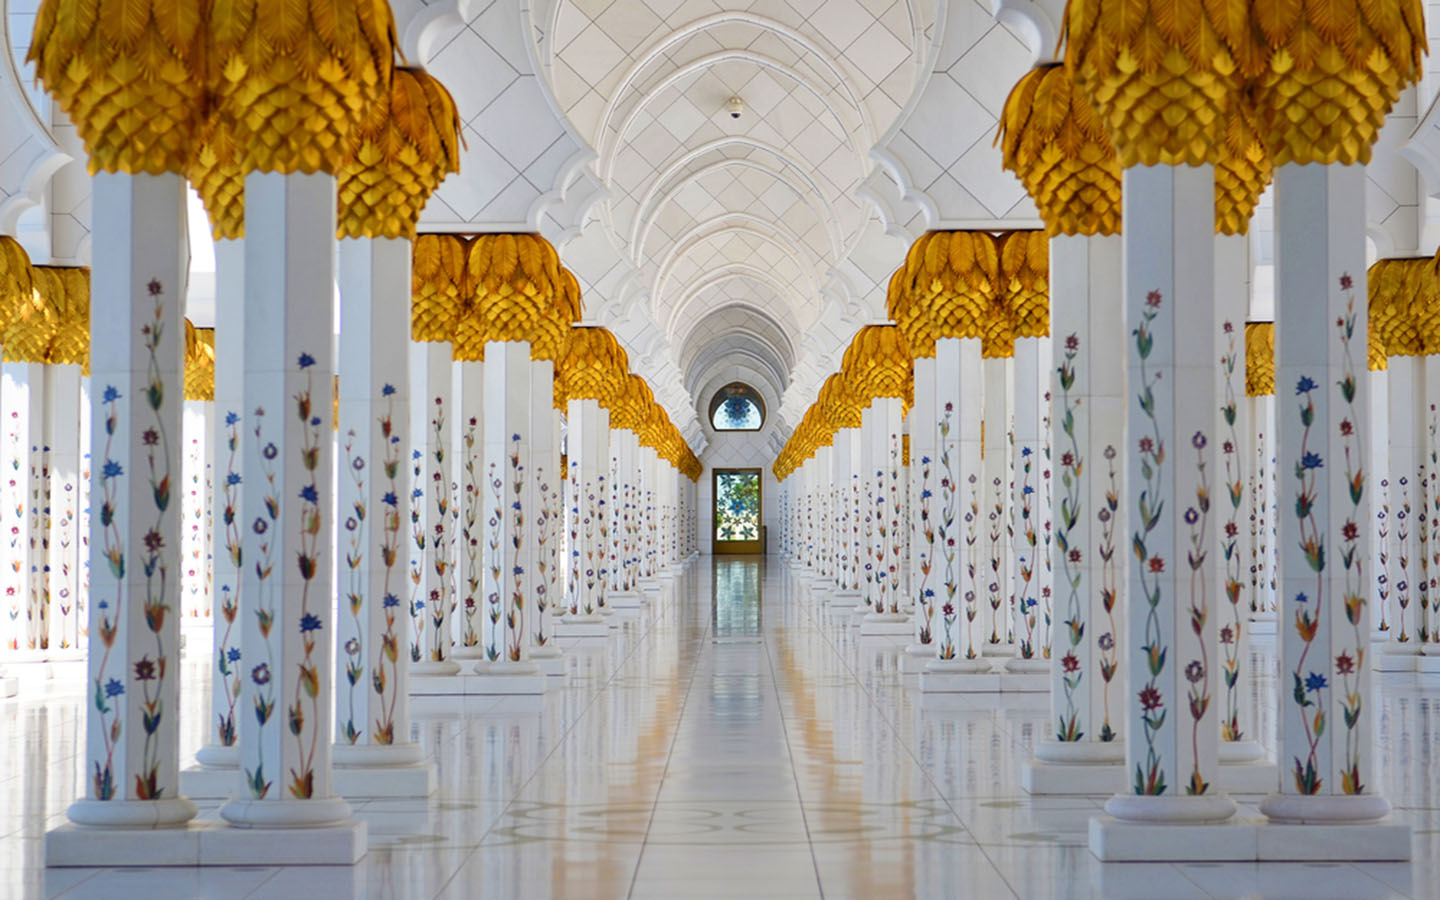 Columns at the Sheikh Zayed Grand Mosque